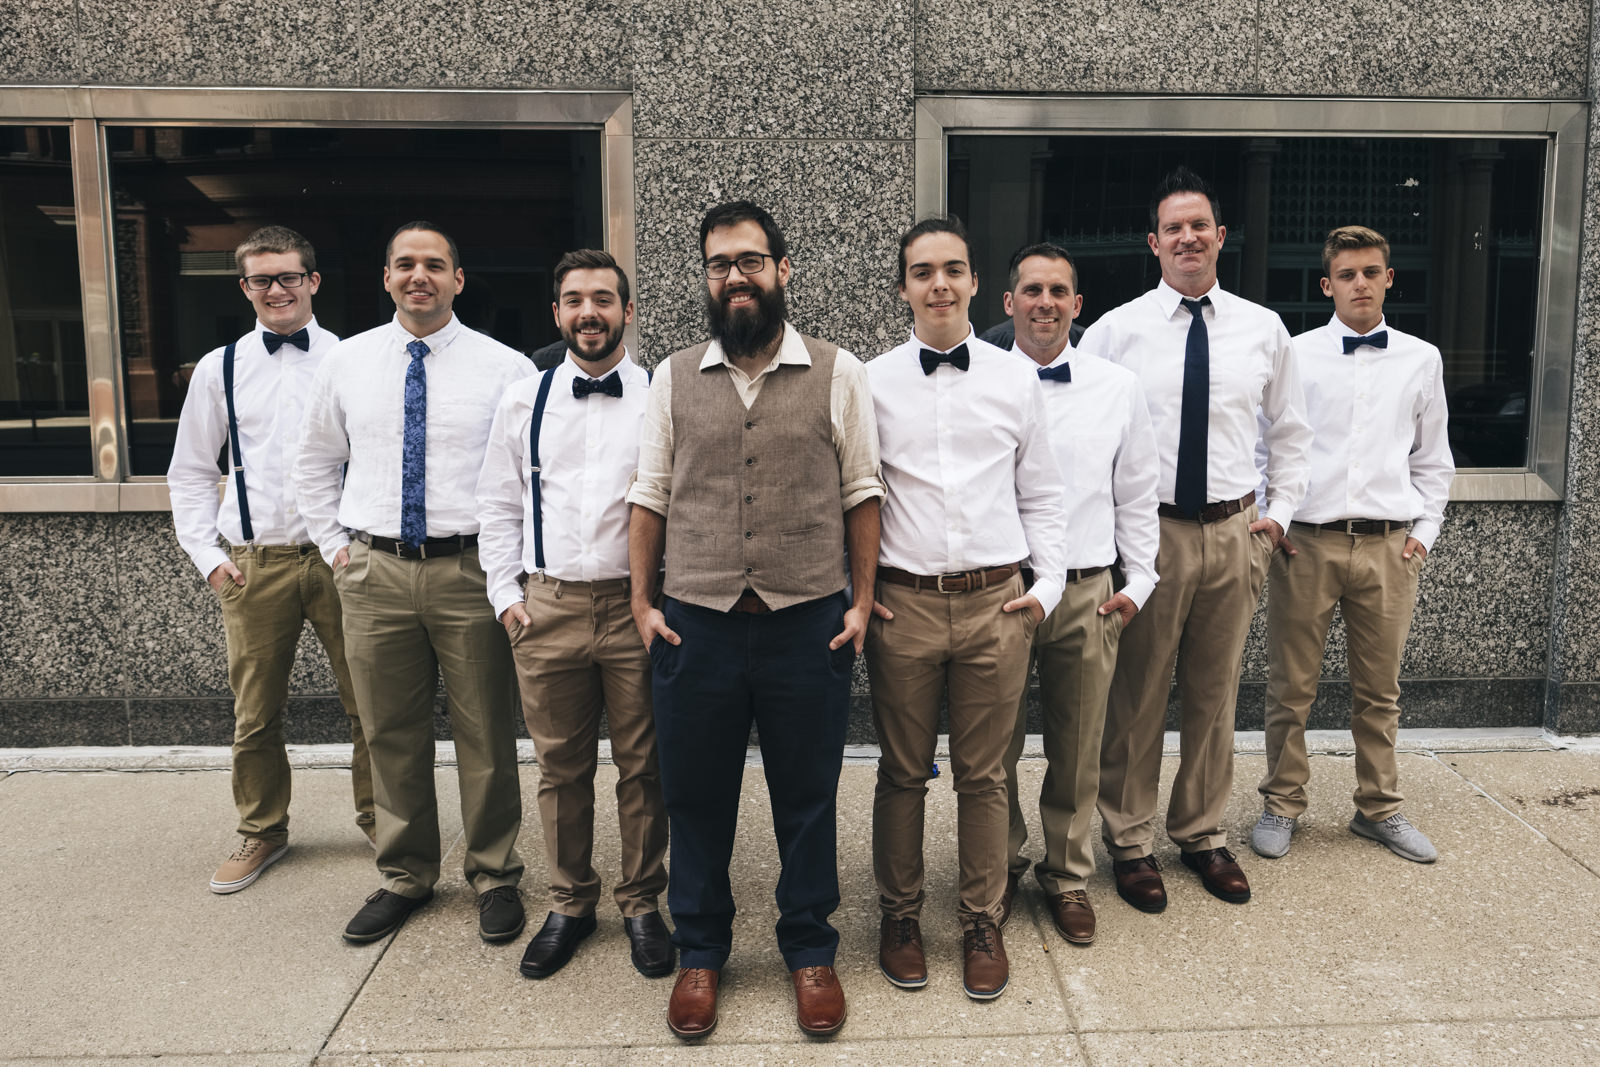 Groomsmen portrait in downtown Toledo